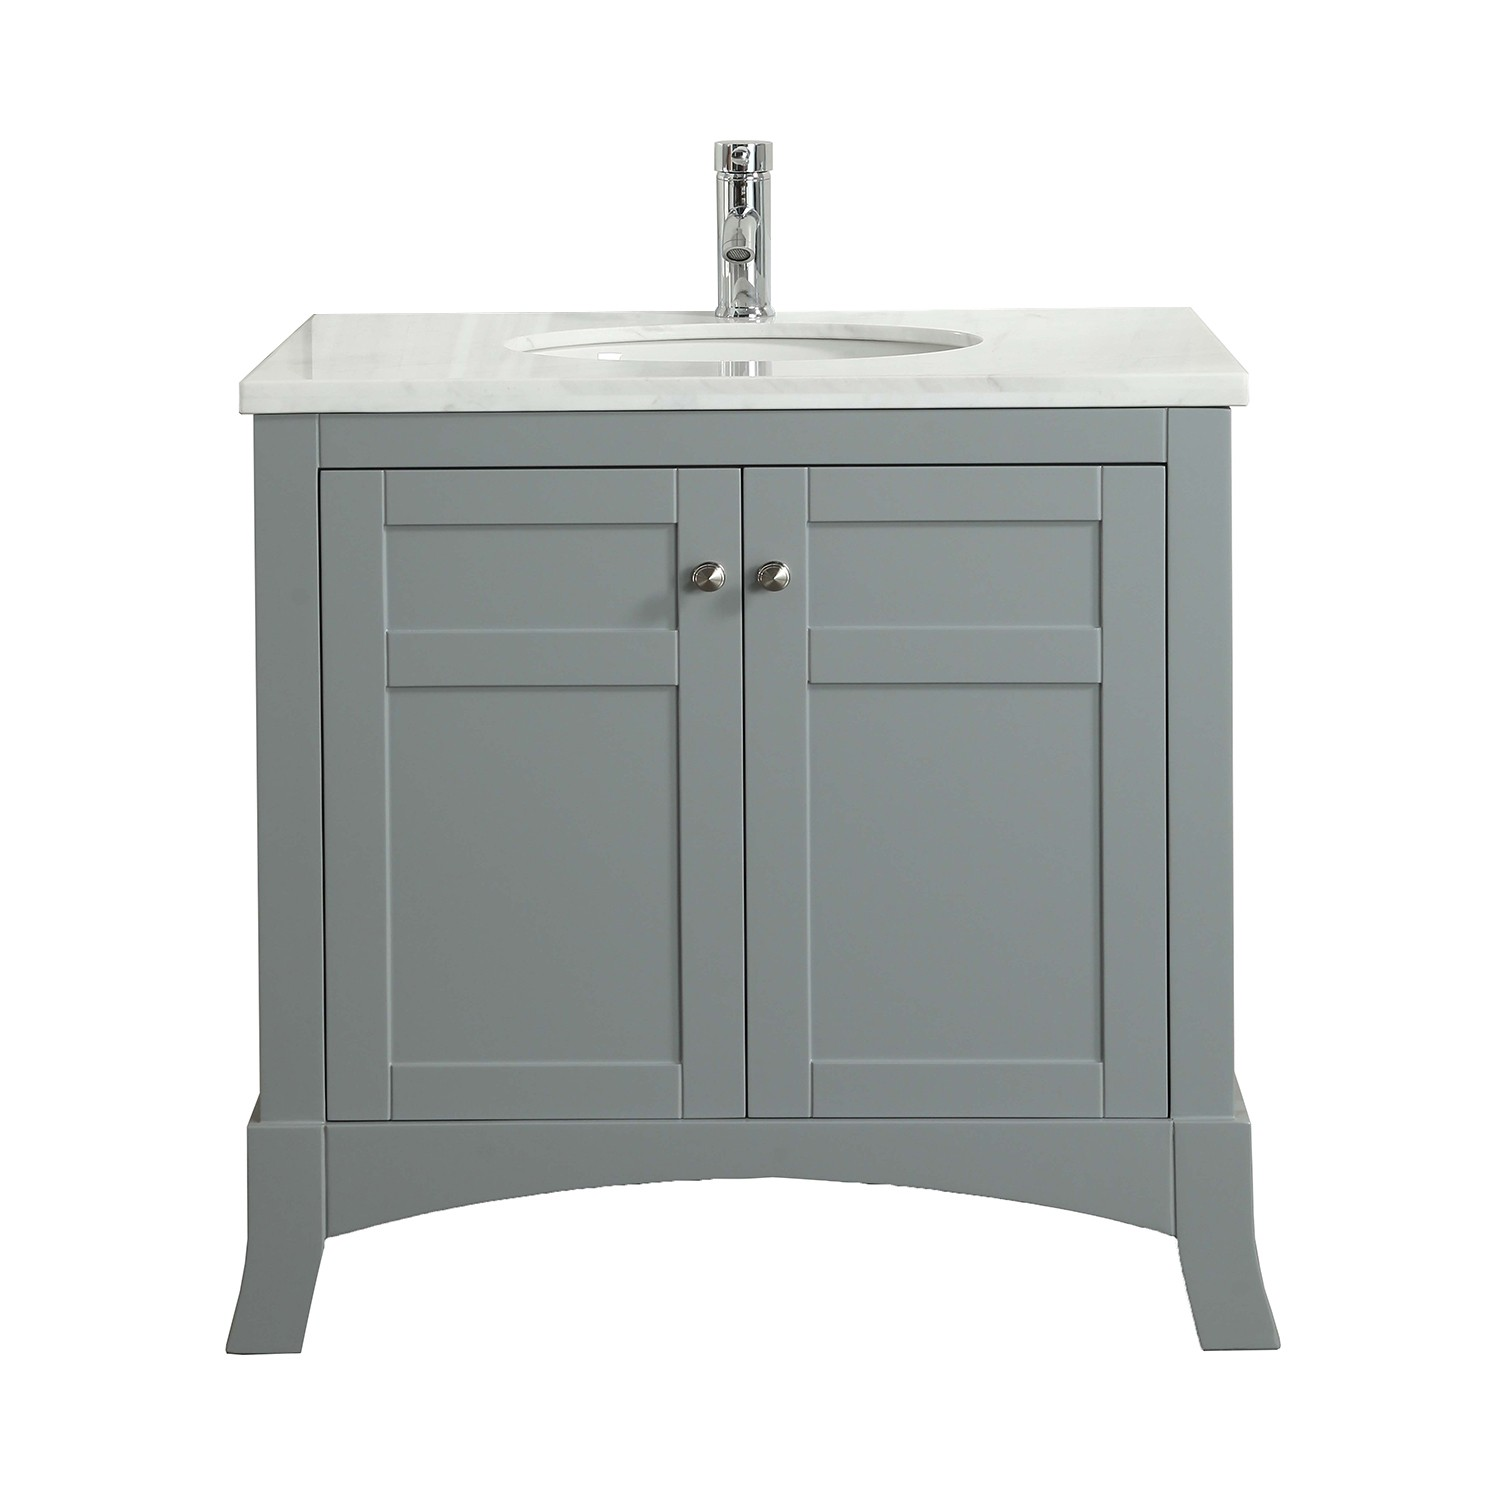 Eviva New York 30 Grey Bathroom Vanity With White Marble Carrera Counter Top Sink Decors Us